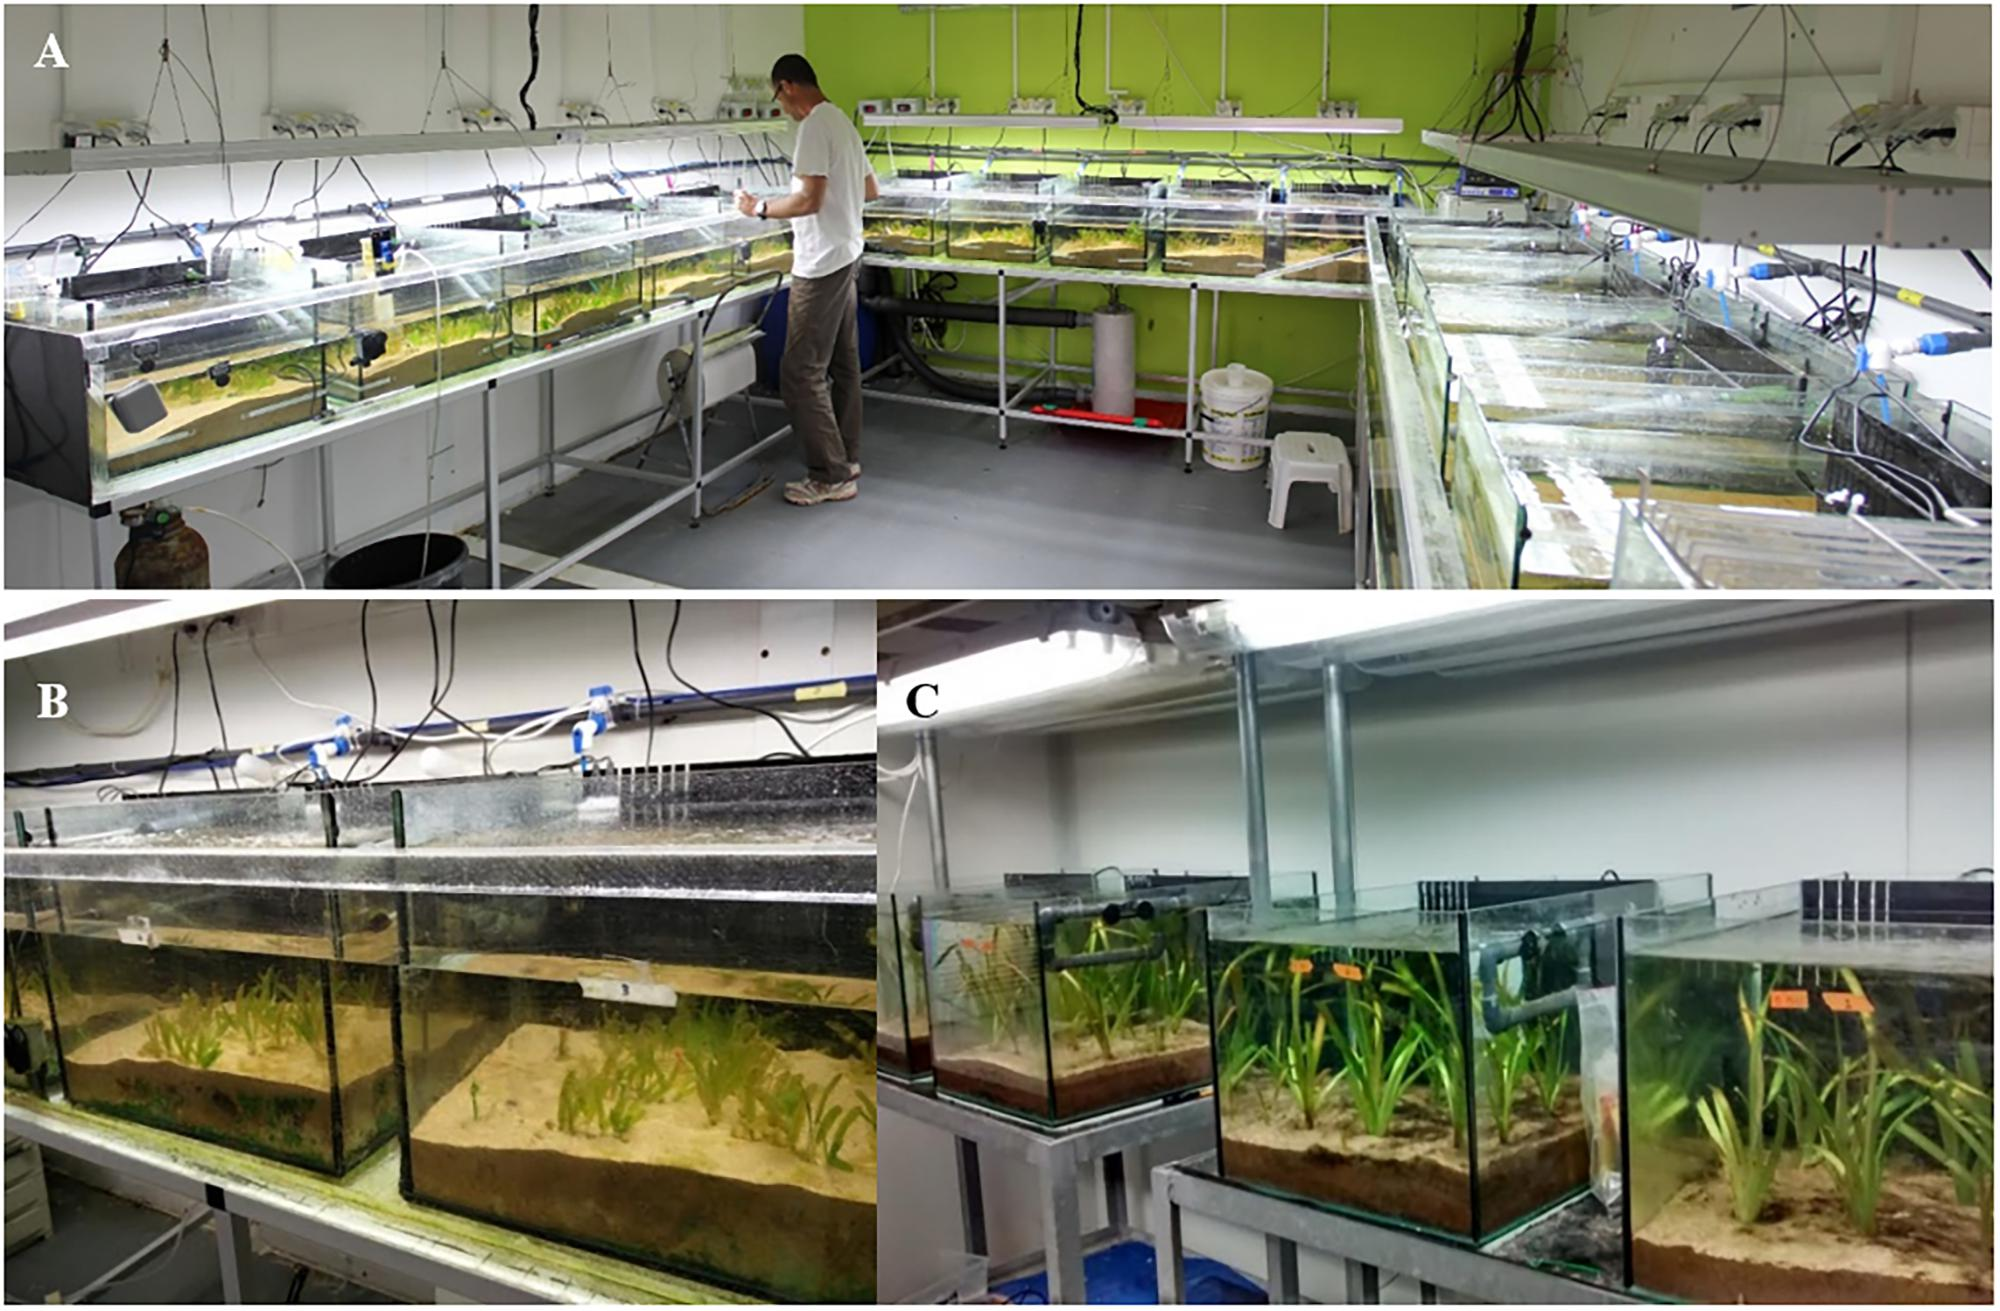 Frontiers | The Tropical Invasive Seagrass, Halophila